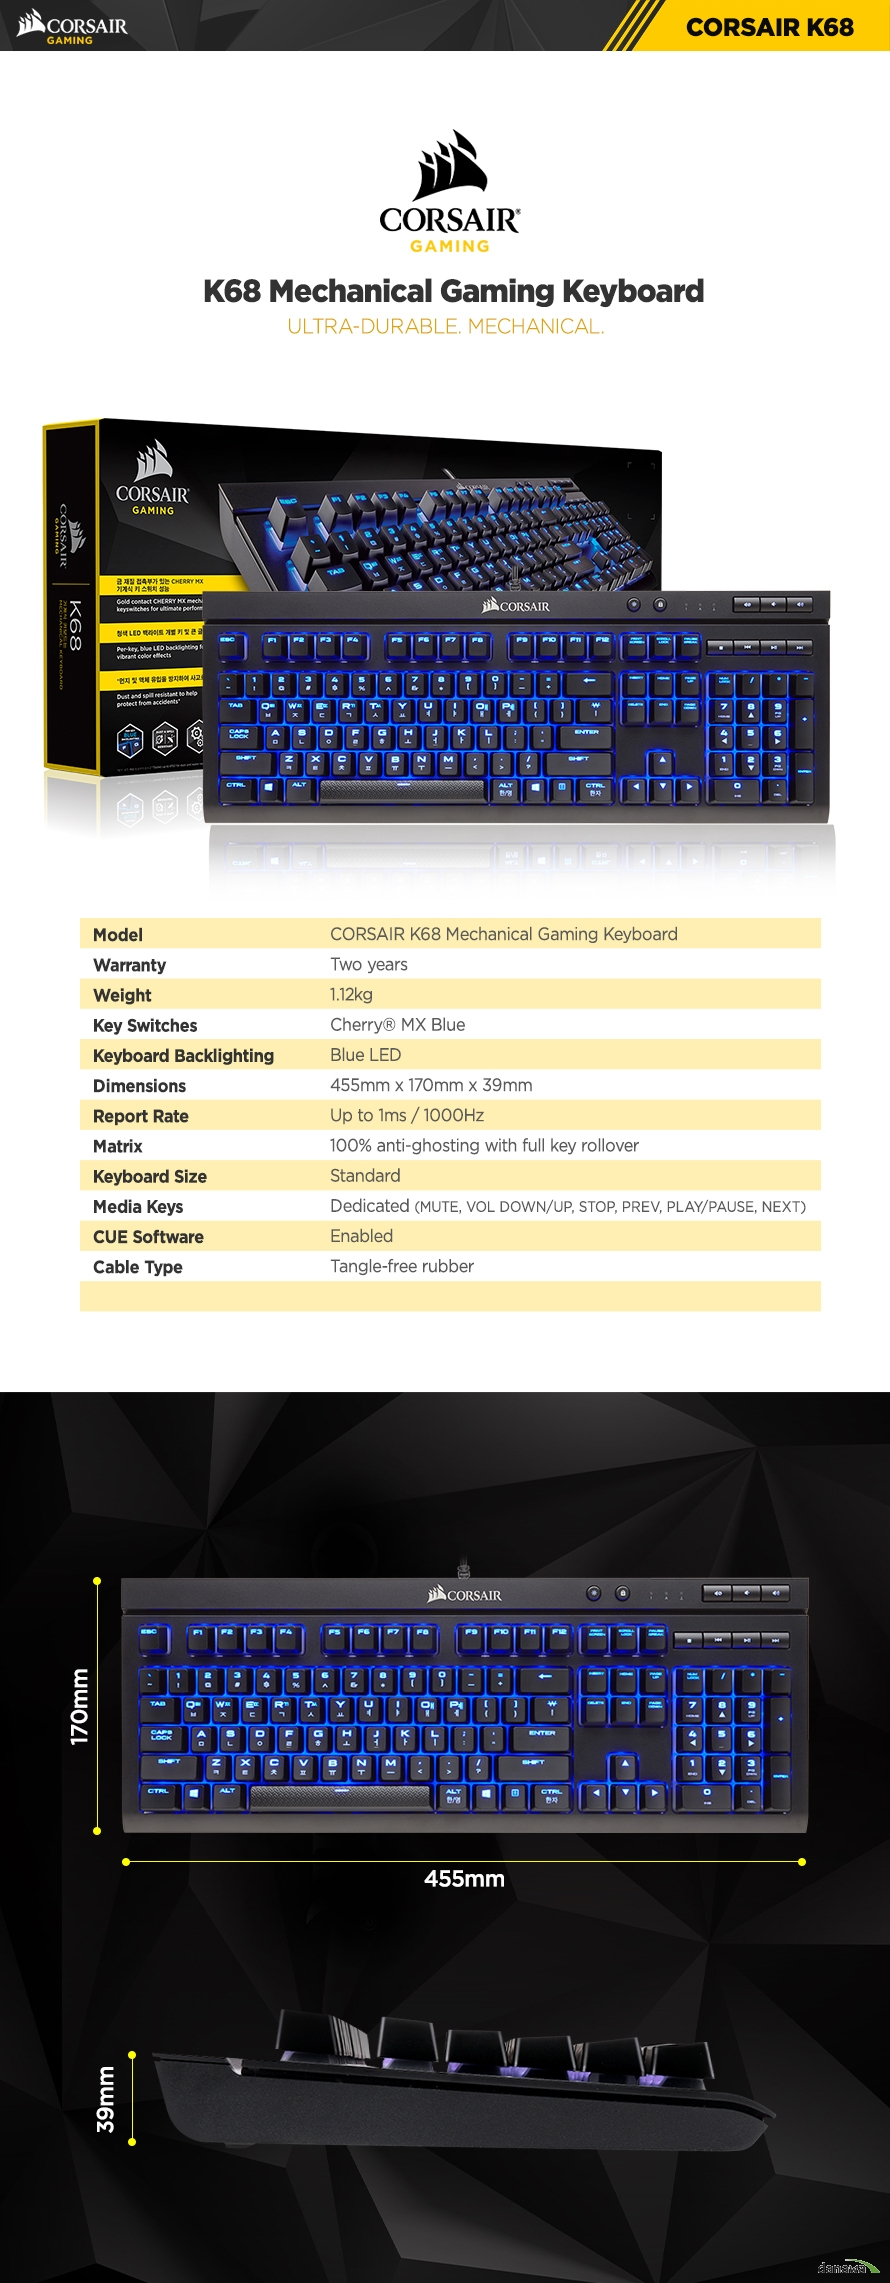 K68 Mechanical Gaming Keyboard ULTRA-DURABLE. MECHANICAL.Model CORSAIR K68 Mechanical Gaming KeyboardWarranty Two yearsWeight 1.12kgKey Switches Cherry MX BlueKeyboard Backlighting Blue LEDDimensions 455mm x 170mm x 39mmReport Rate Up to 1ms / 1000HzMatrix 100% anti-ghosting with full key rolloverKeyboard Size StandardMedia Keys Dedicated (MUTE, VOL DOWN/UP, STOP, PREV, PLAY/PAUSE, NEXT)CUE Software EnabledCable Type Tangle-free rubberWIN Lock Yes